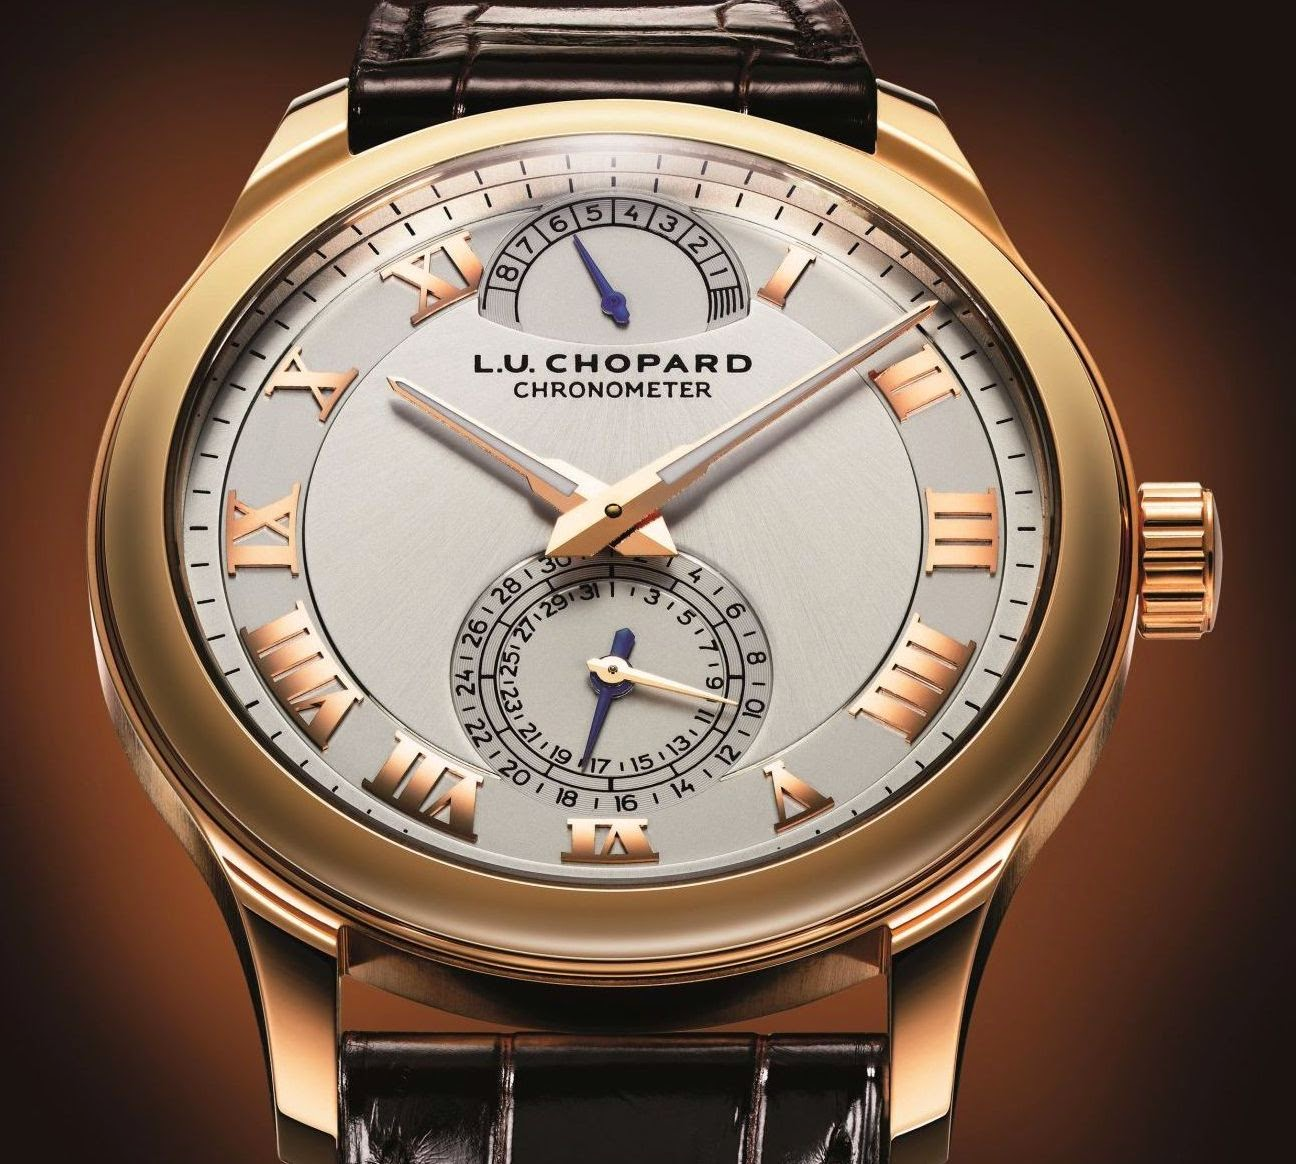 439018c2687a5c The typeface of the L.U.C collection has also been changed, as have the  traditional Roman numerals inspired by a 1960s style.